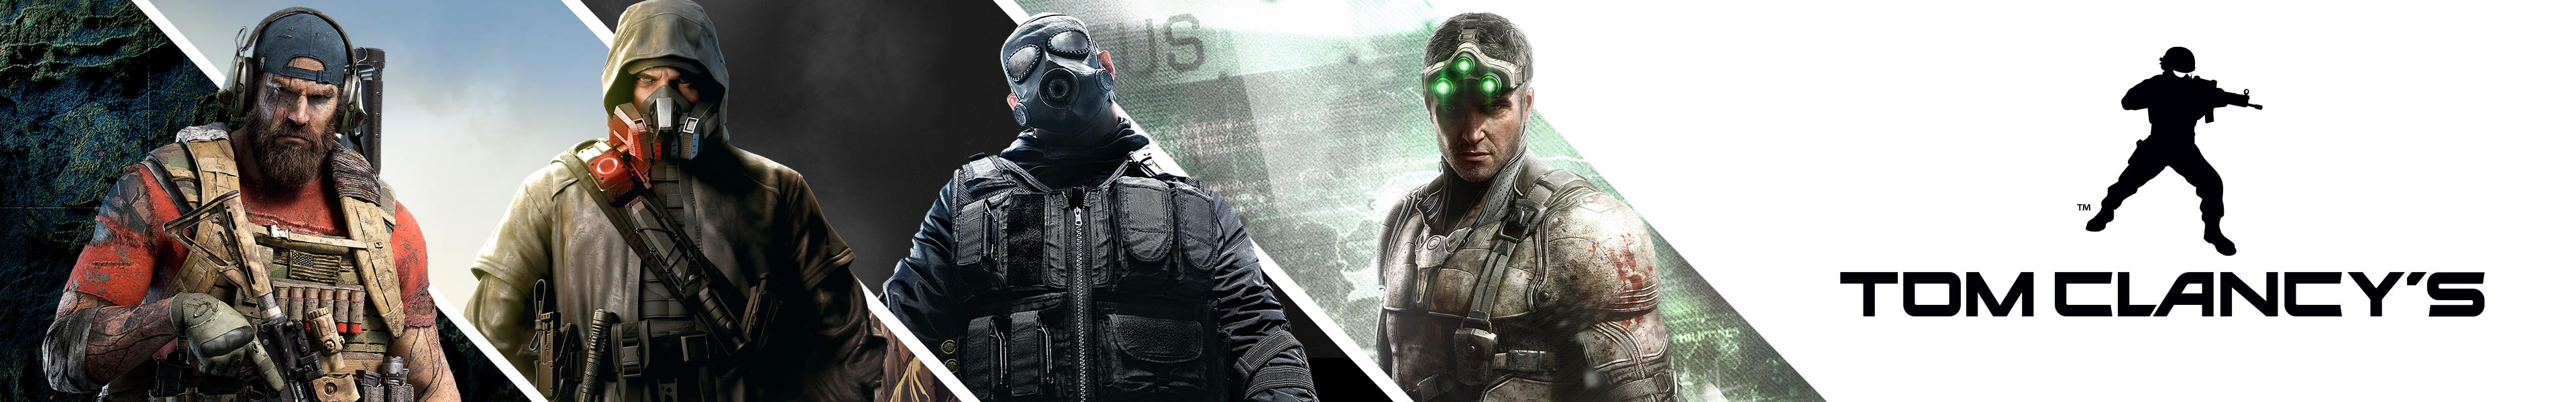 Tom Clancy's Franchise Category banner